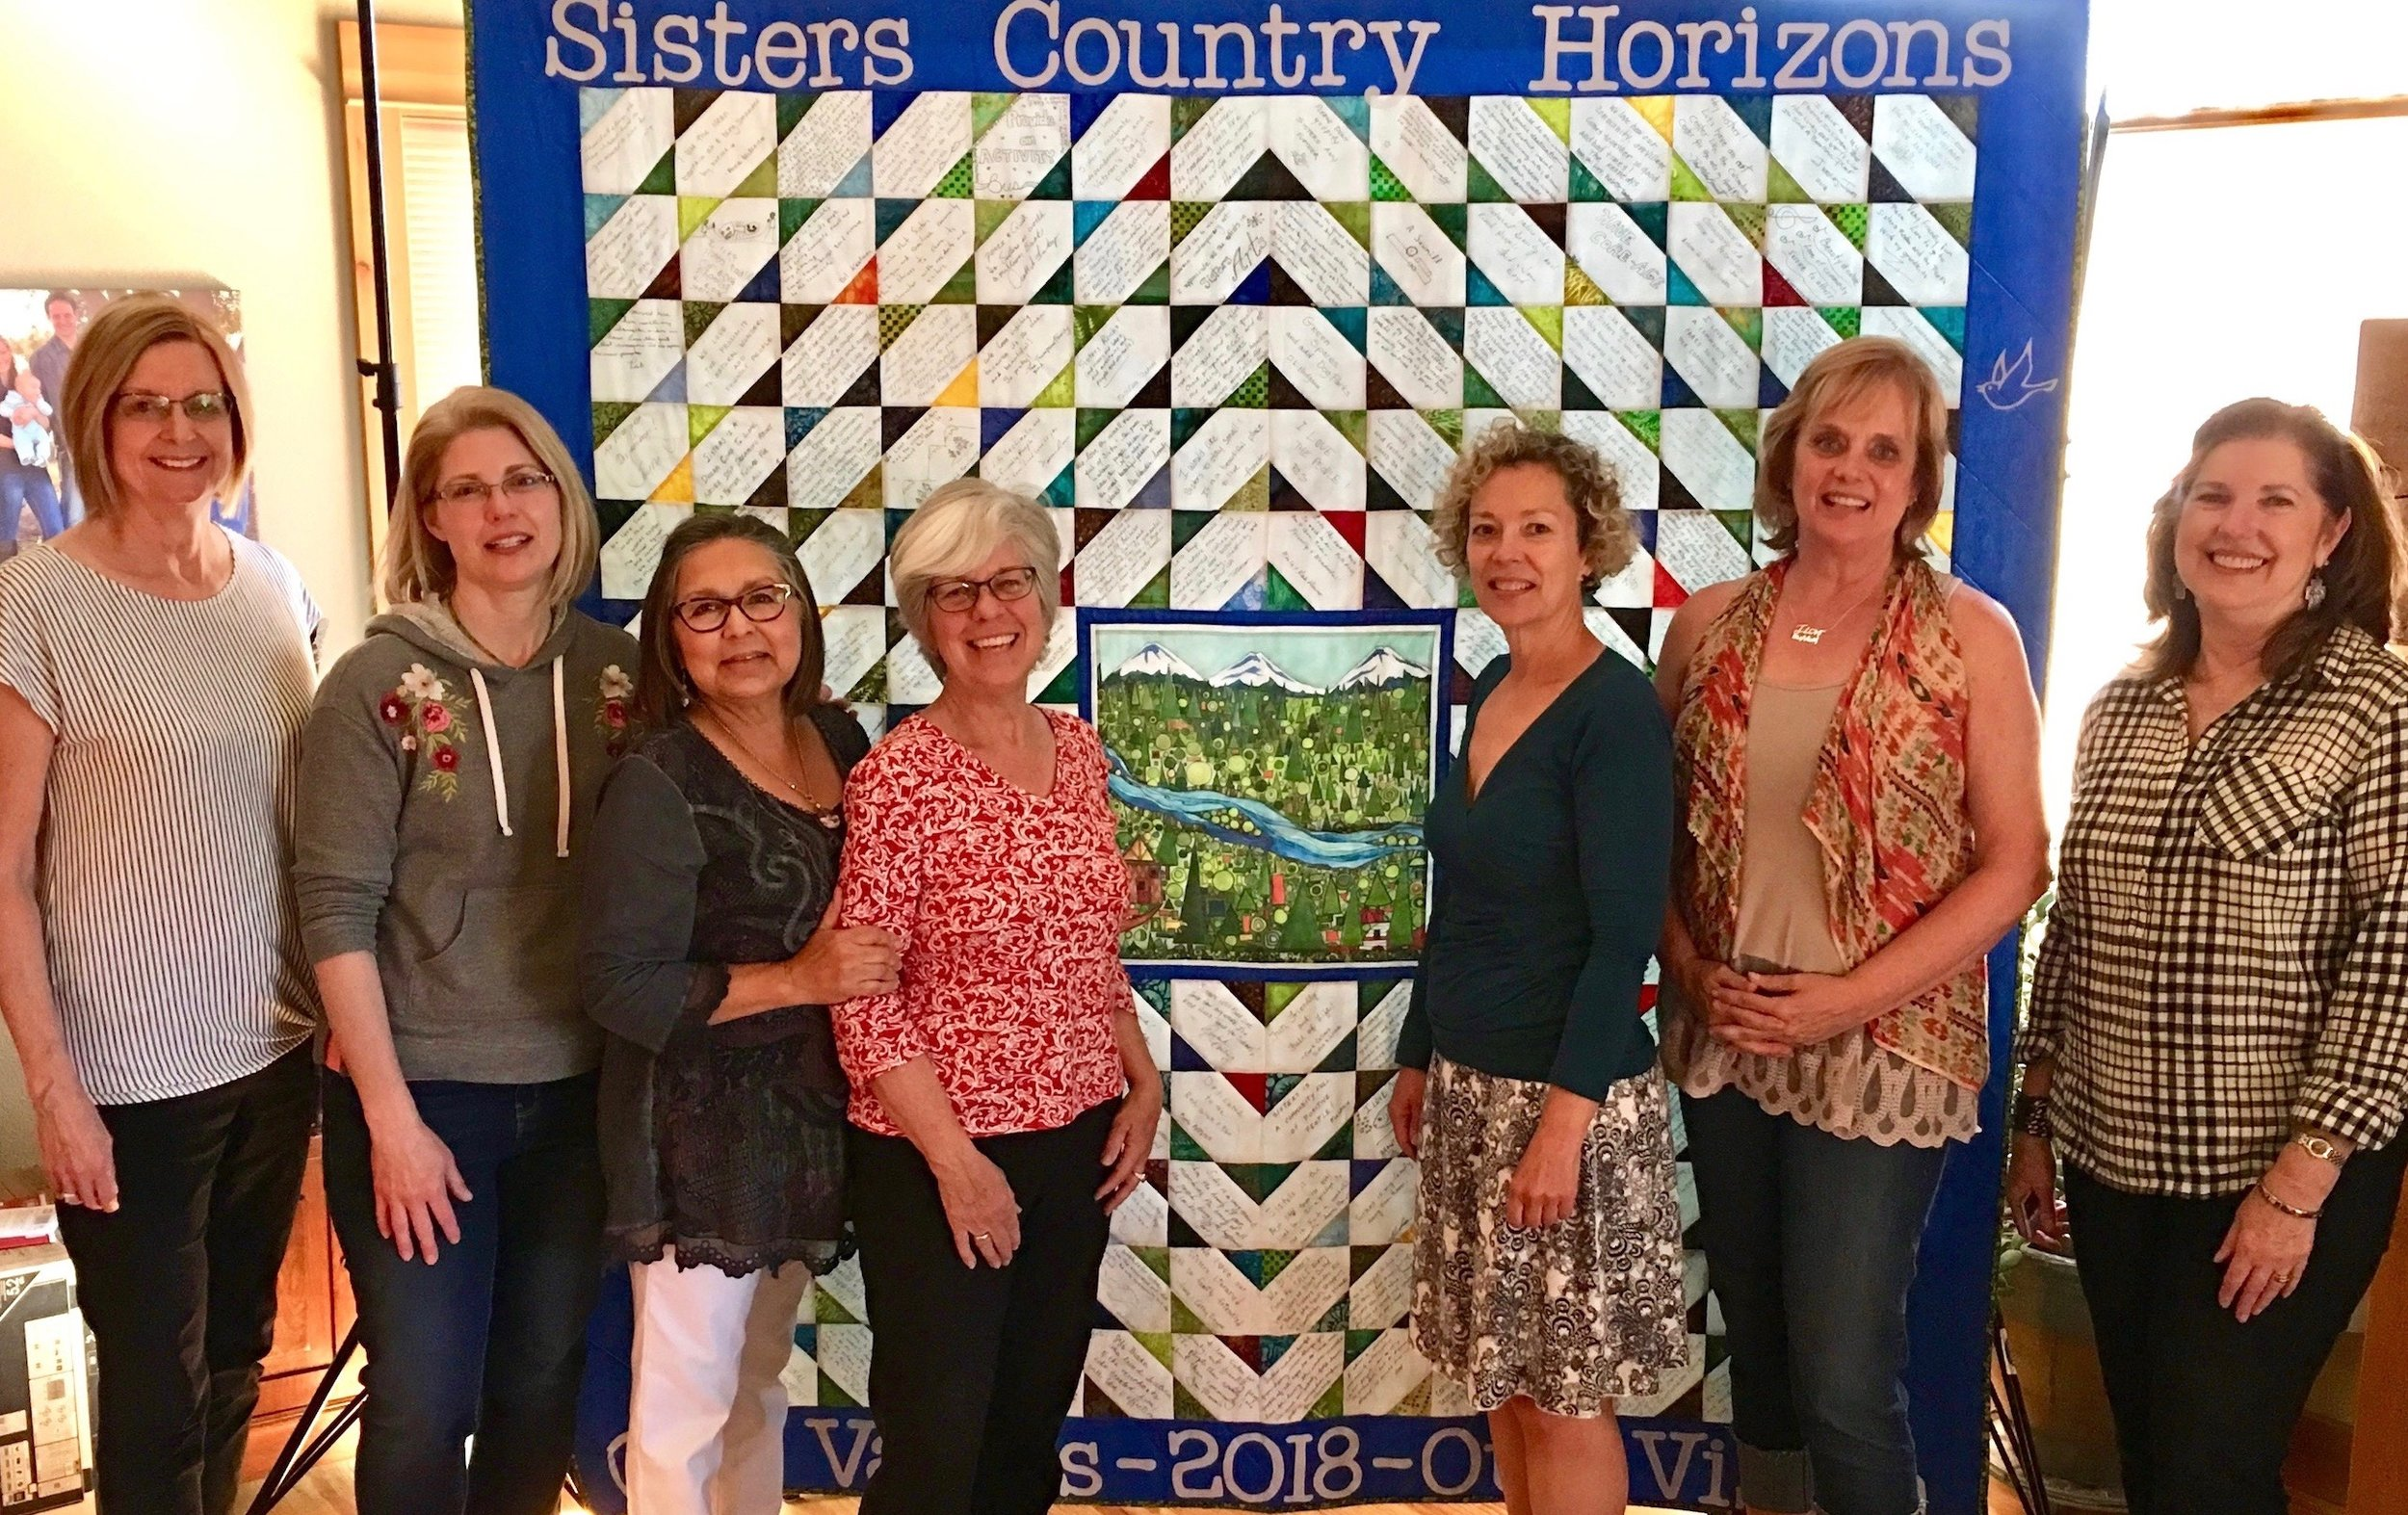 Celebrating the recent completion of the Sisters Country Quilt are, left to right, Nancy Frazeur, Amy Burgstahler, Gilda Hunt, Jeanette Pilak, Robyn Holdman, Diane Tolzman and Janet Storton.